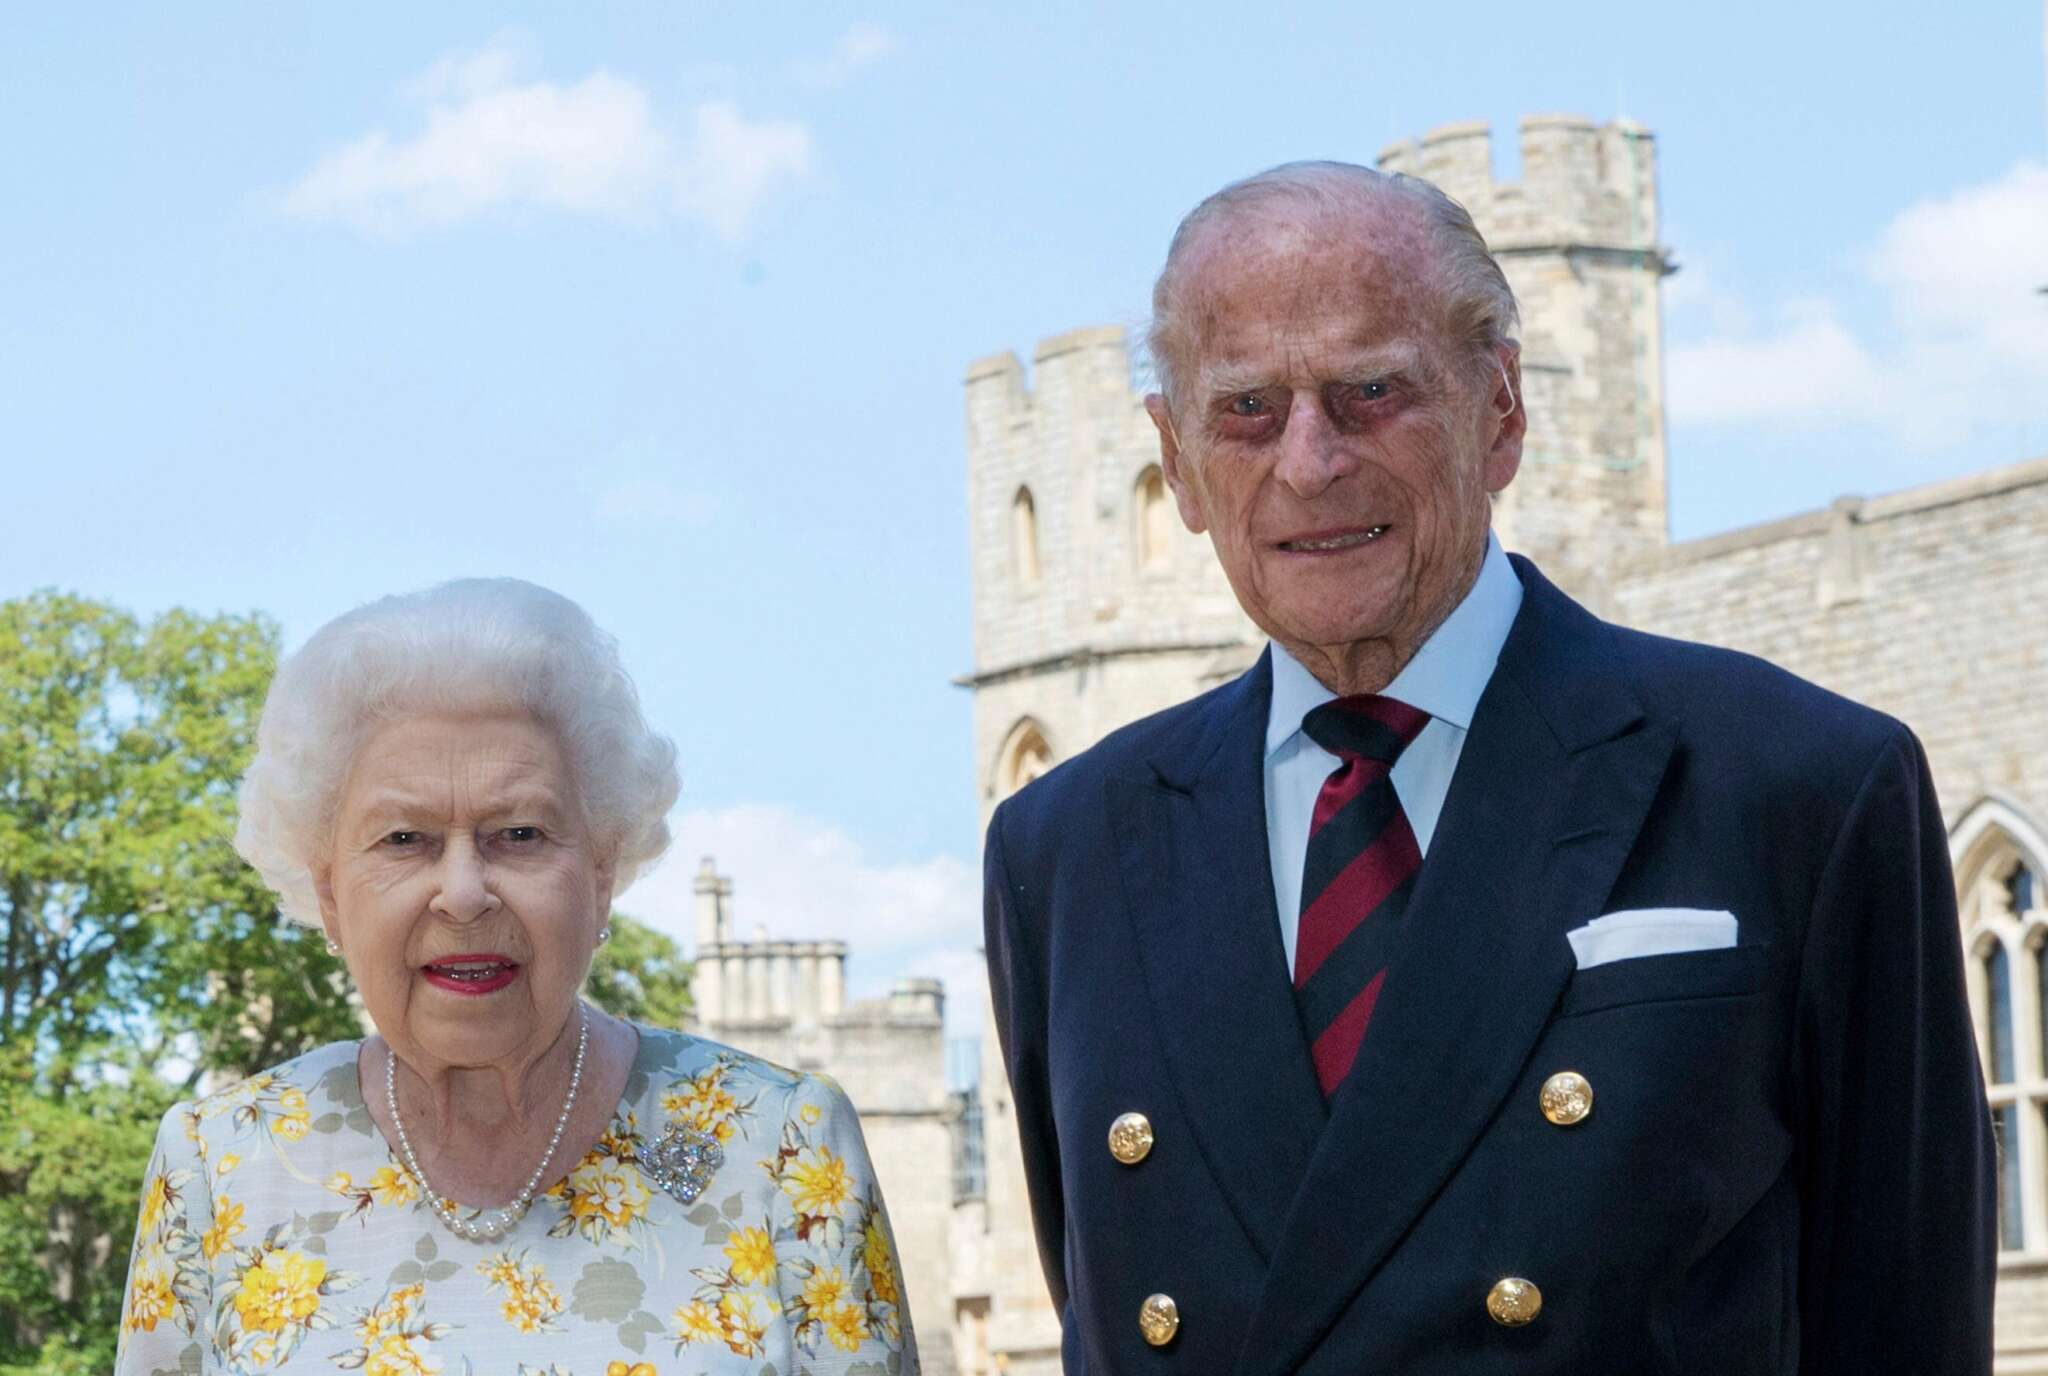 prince-philip-gets-admitted-to-the-hospital-after-feeling-unwell